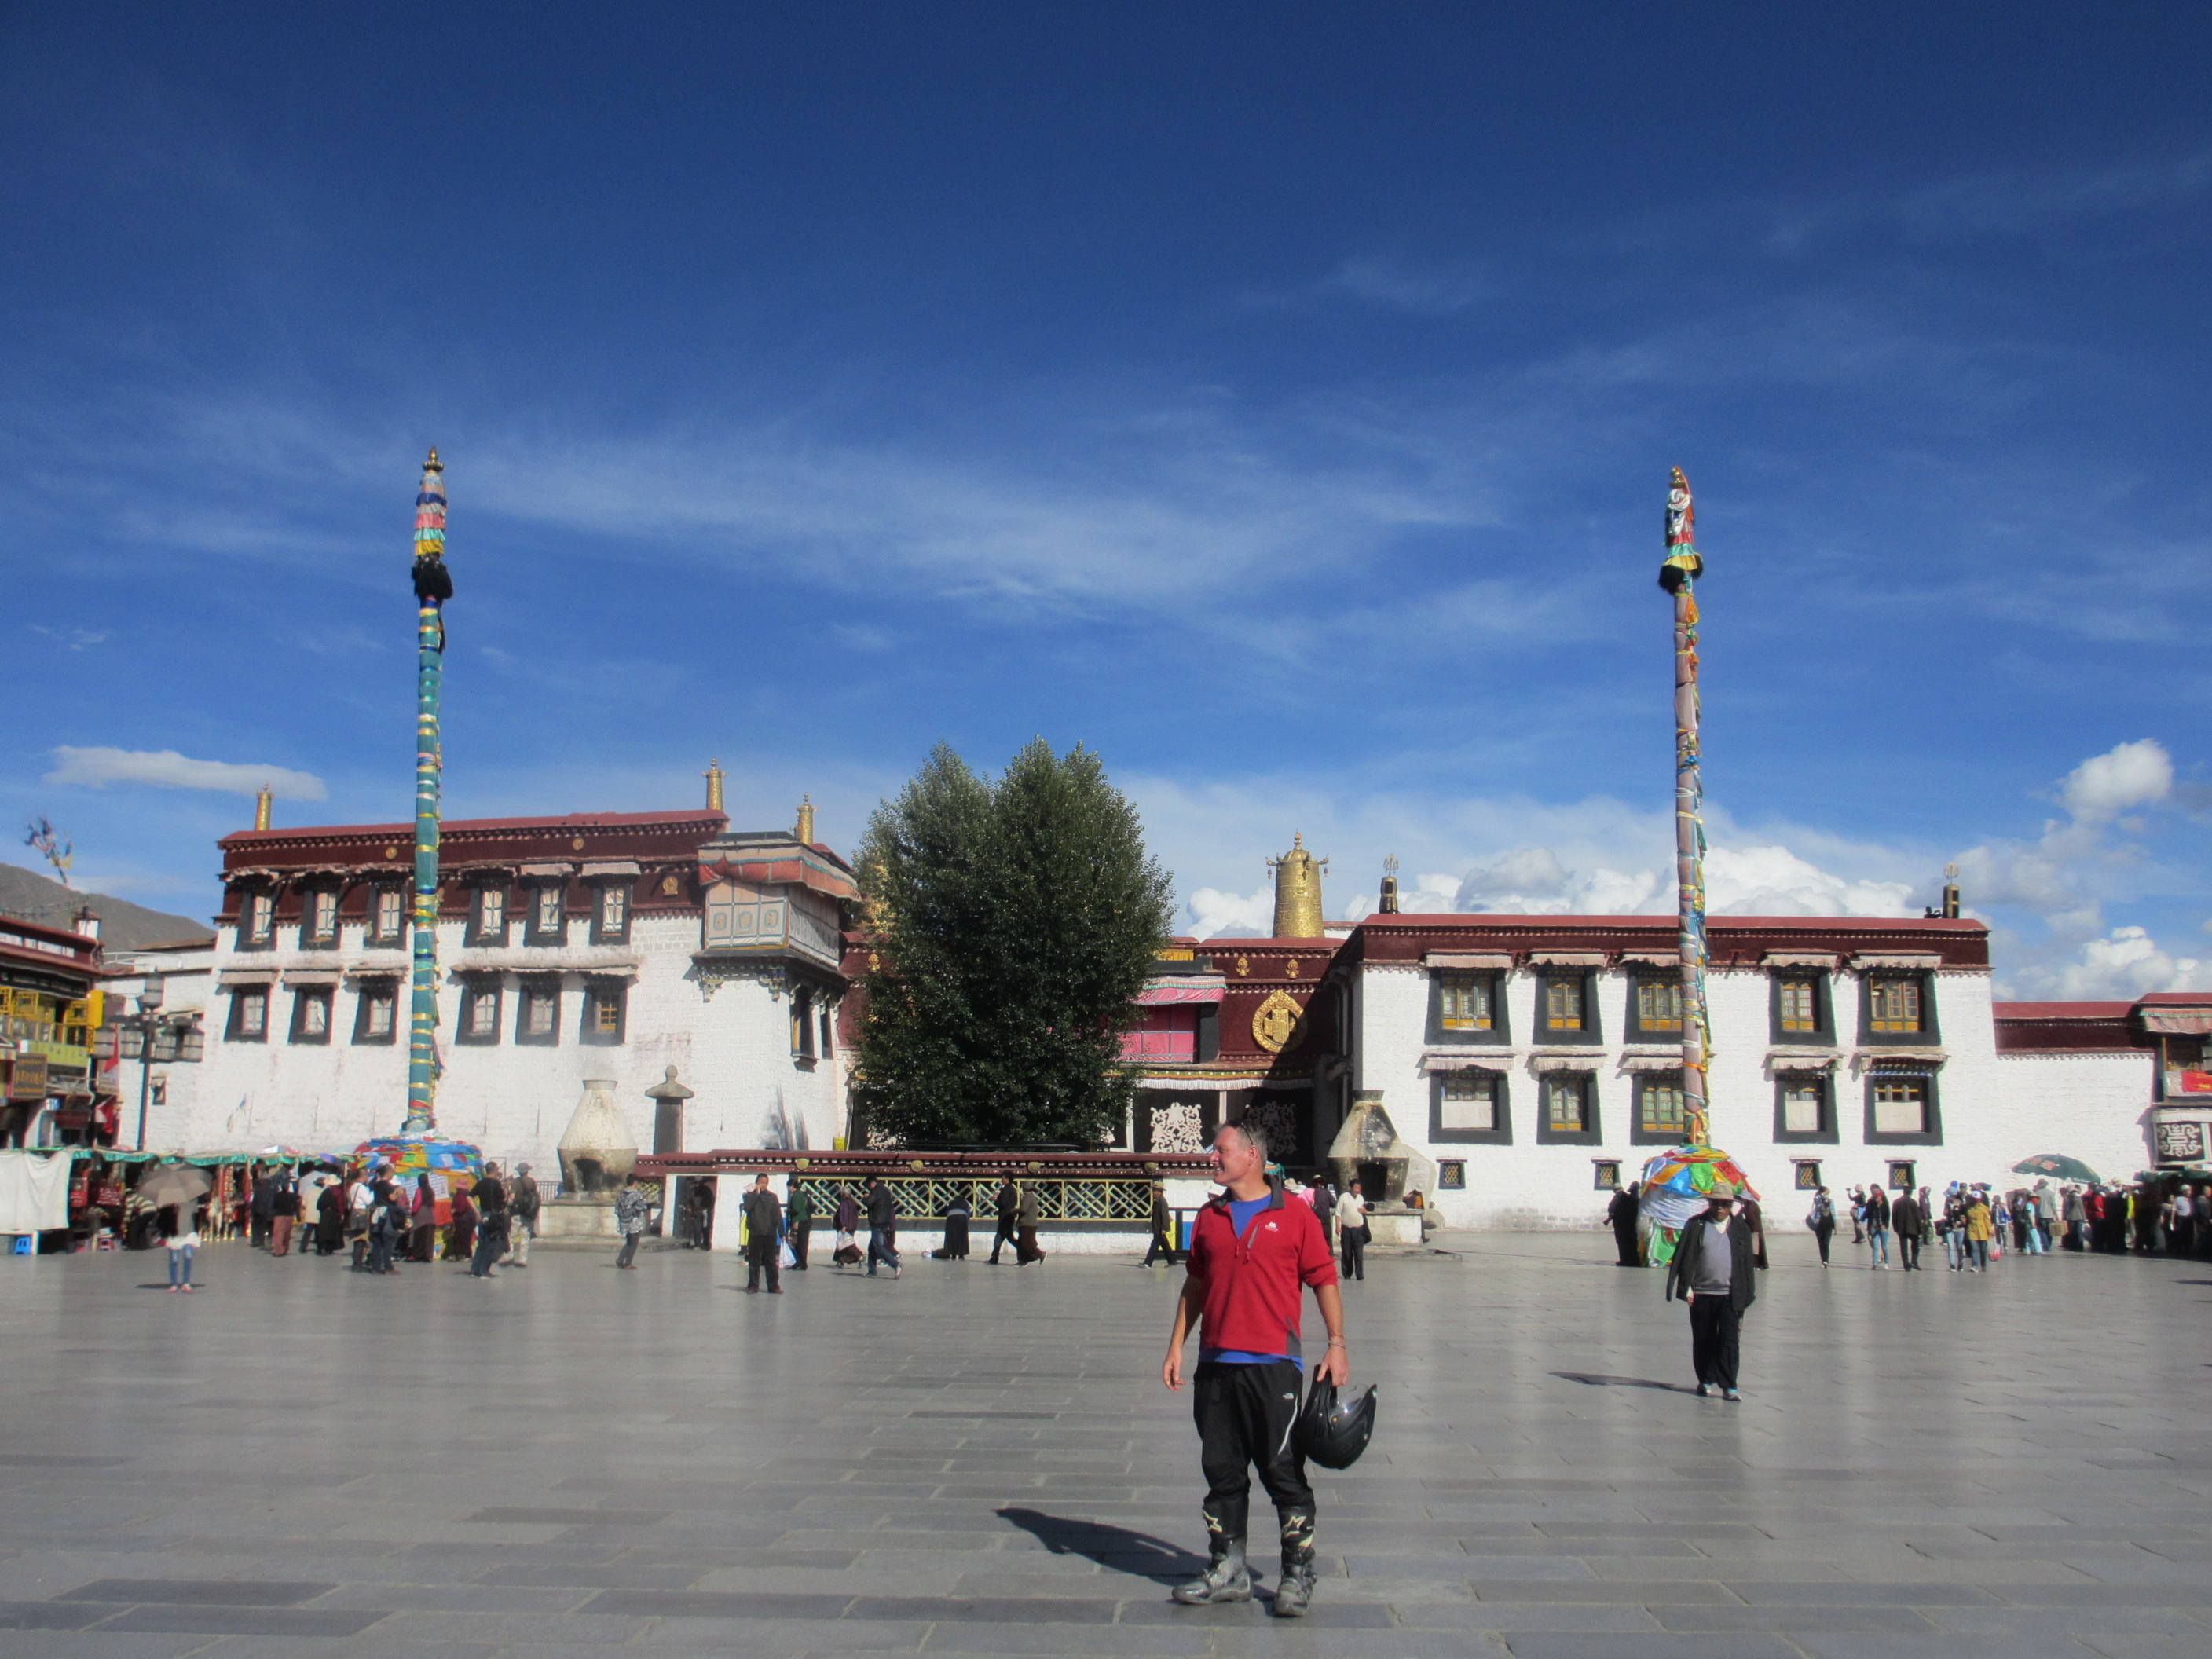 I lost my trainers and so I klomped about Lhasa in my riding boots... which got looks of admiring looks and comments from the Tibetans.